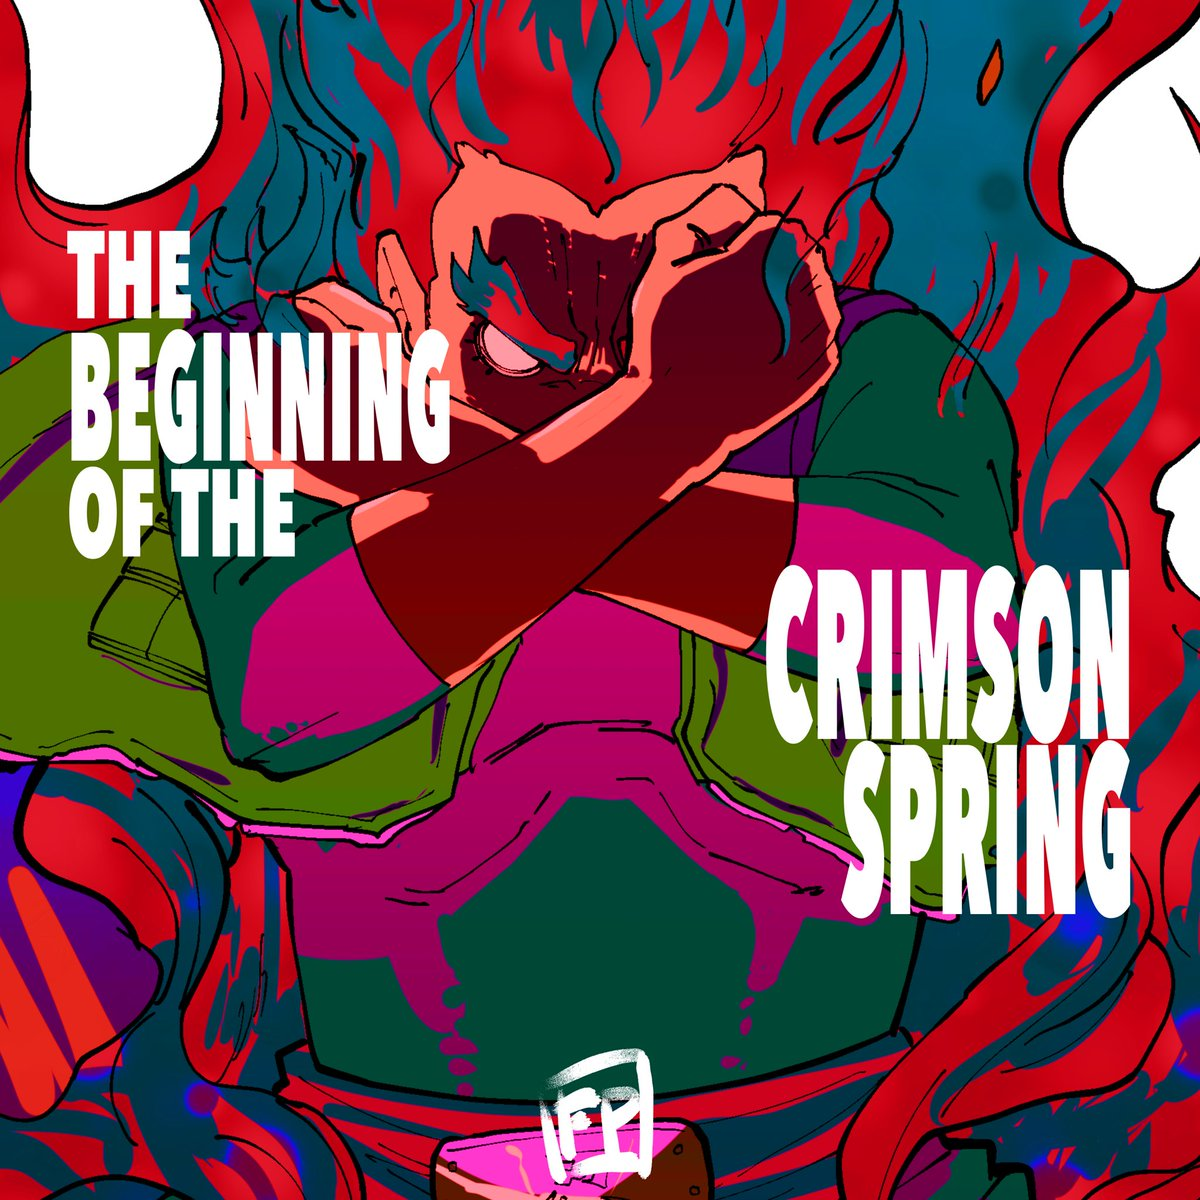 NARUTO vol.69 cover remake. [the beginning of the crimson spring]. . . . #NARUTO #shippudden #coverremake #cover #remake #bleachstyle #beginning #crimson #spring #maito #gai #eighthates #FP ↓↓↓ https://t.co/HEAVI2k9CN https://t.co/JbqTFr9wGQ